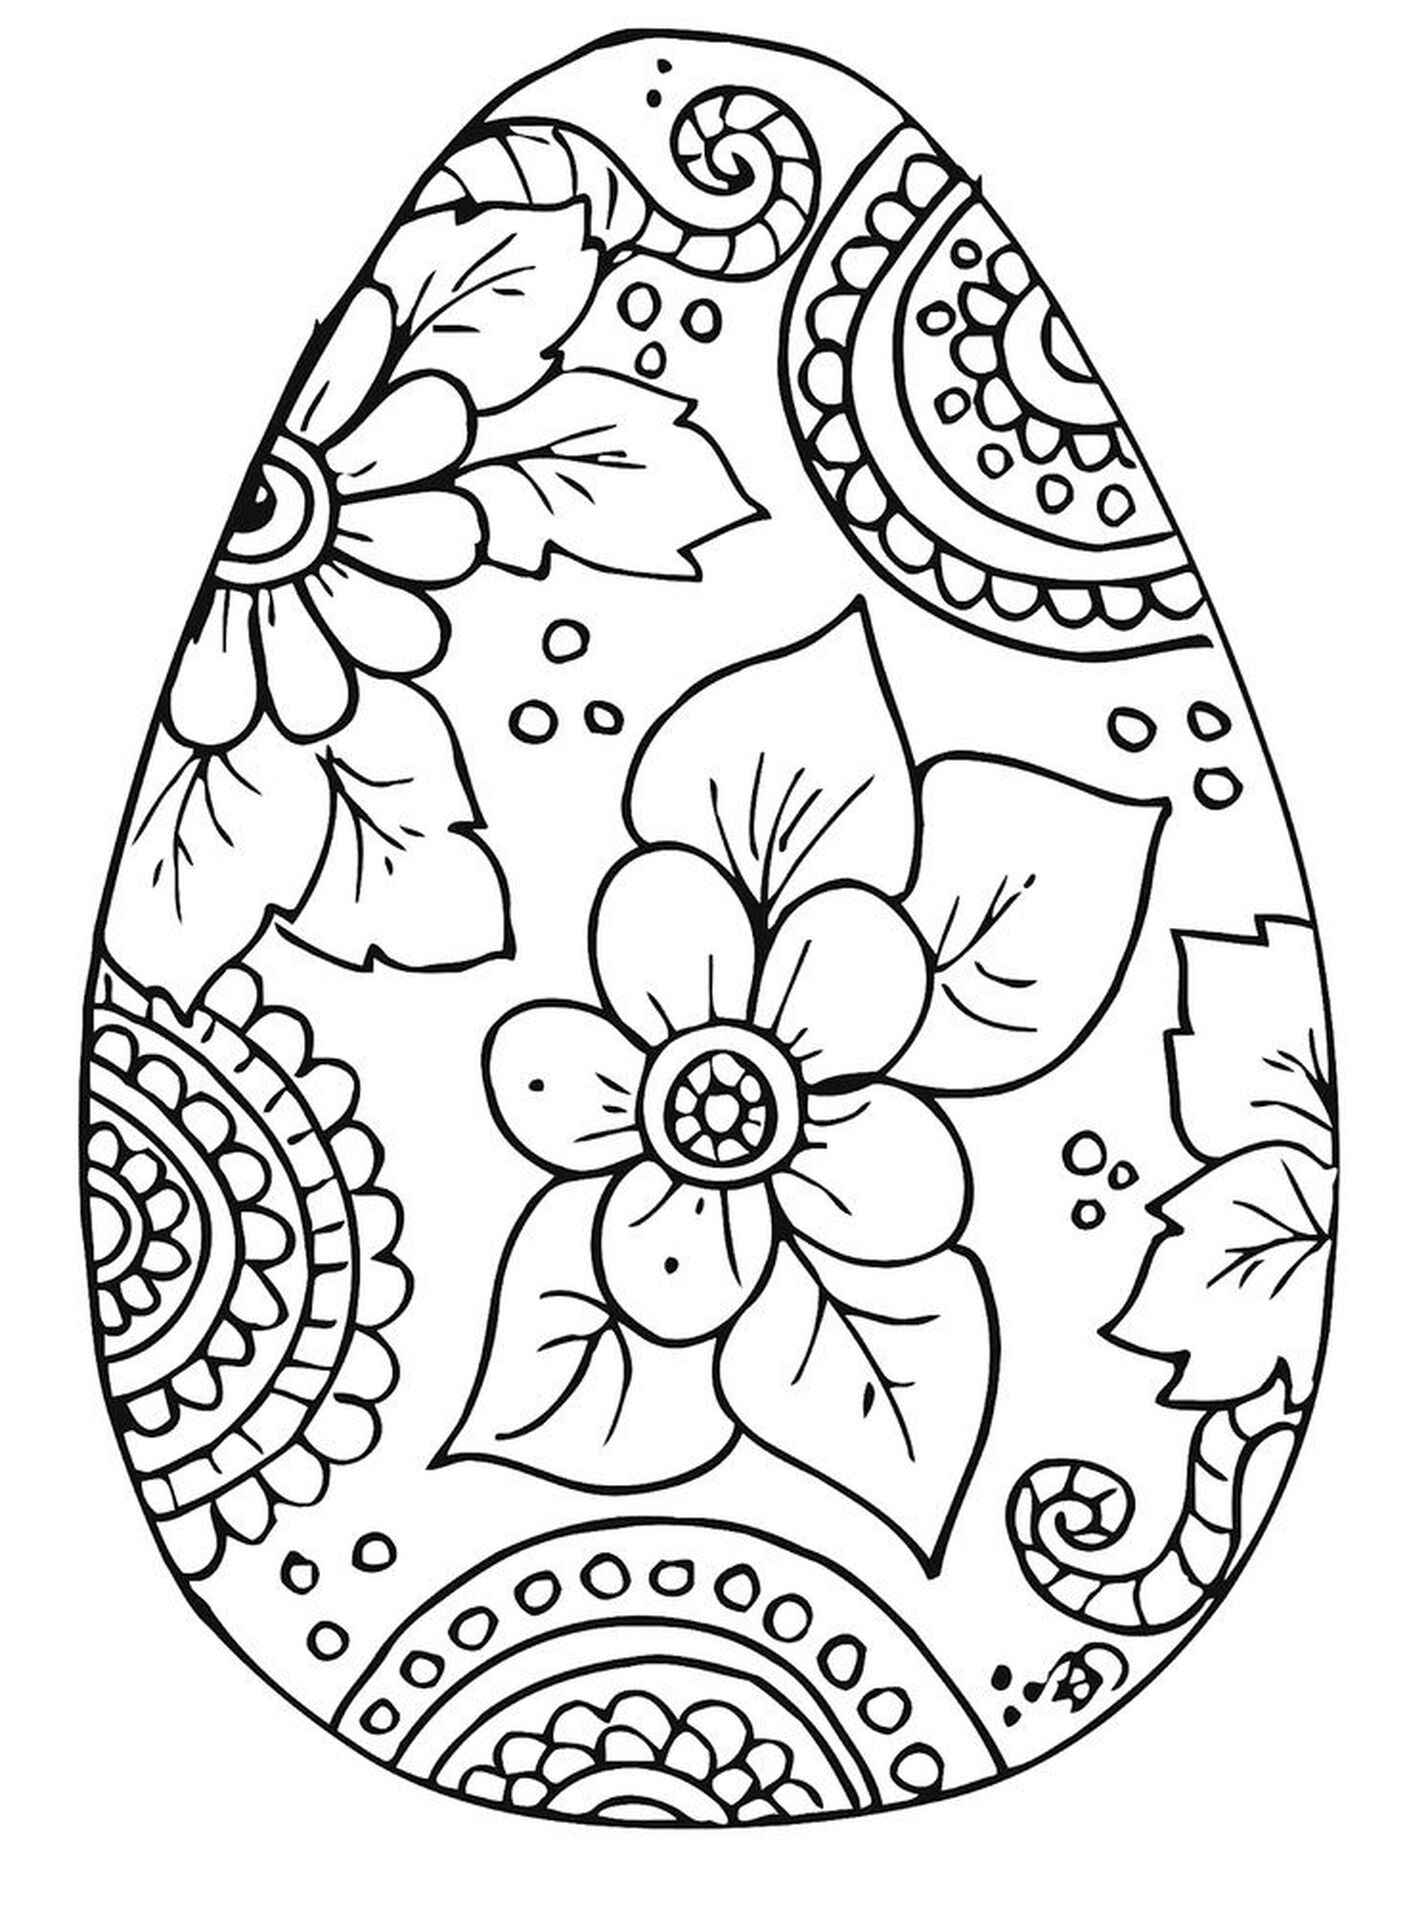 Complex Coloring Page Of An Easter Egg